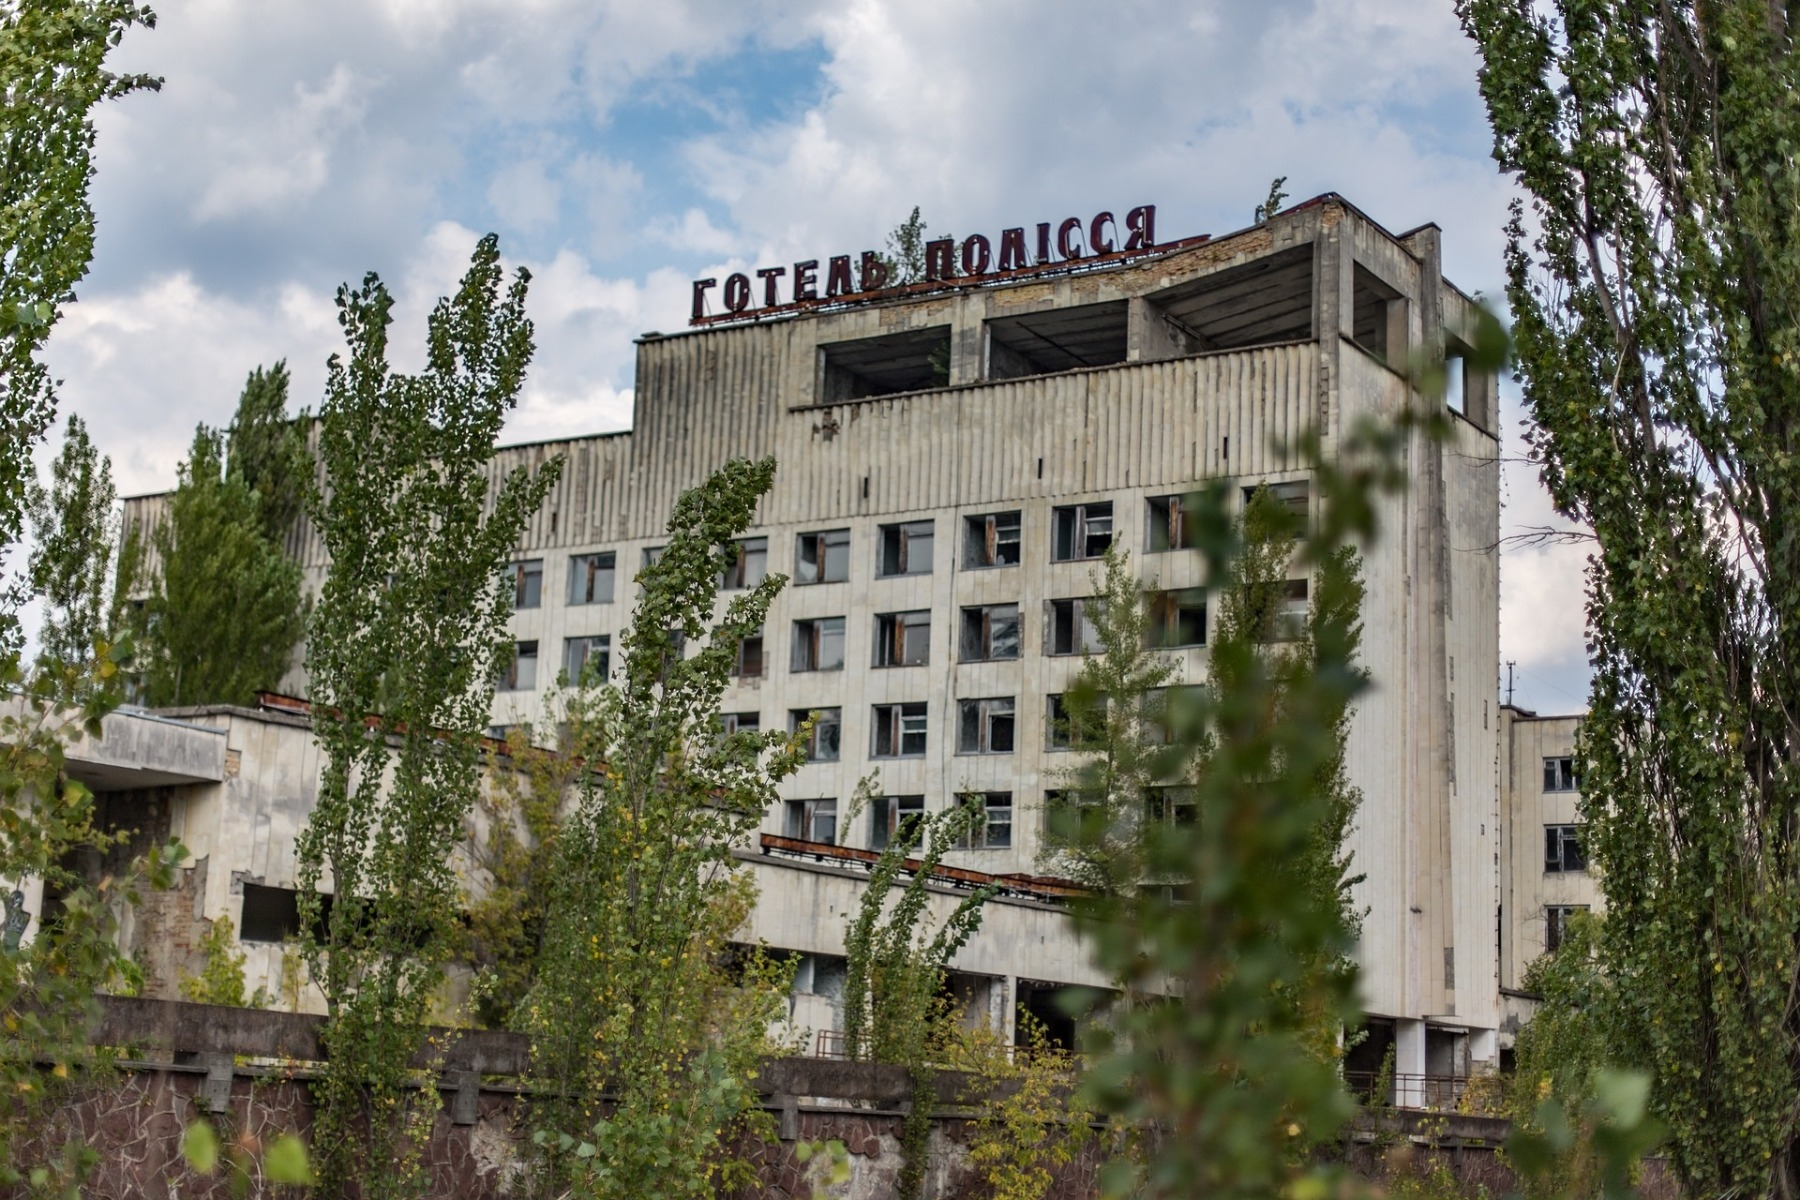 Chernobyl, several decades after the disaster